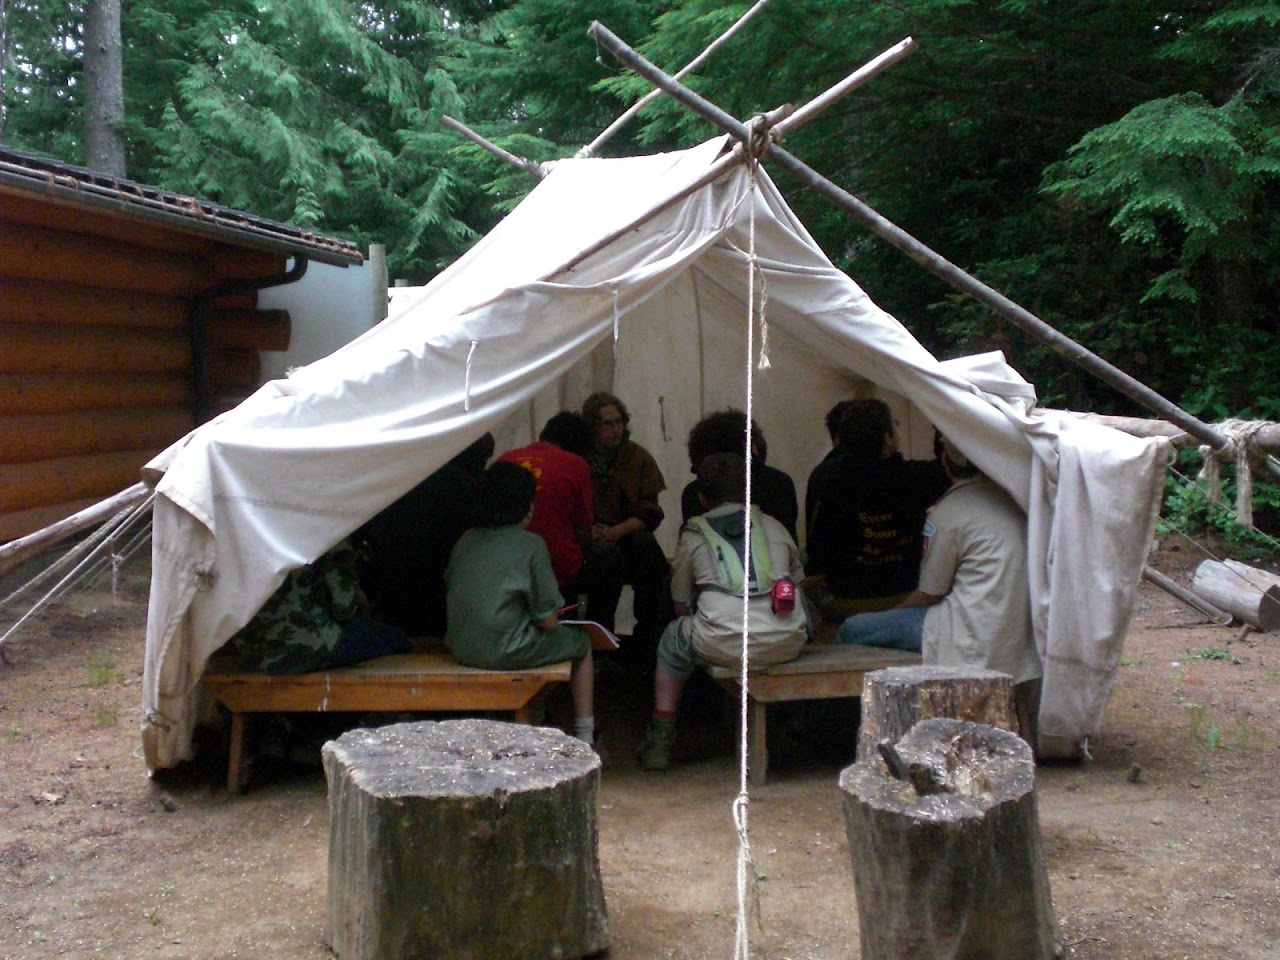 Camp Meriwether 2008 - 2008%7E08%7E10 Camp Meriwether 27.JPG